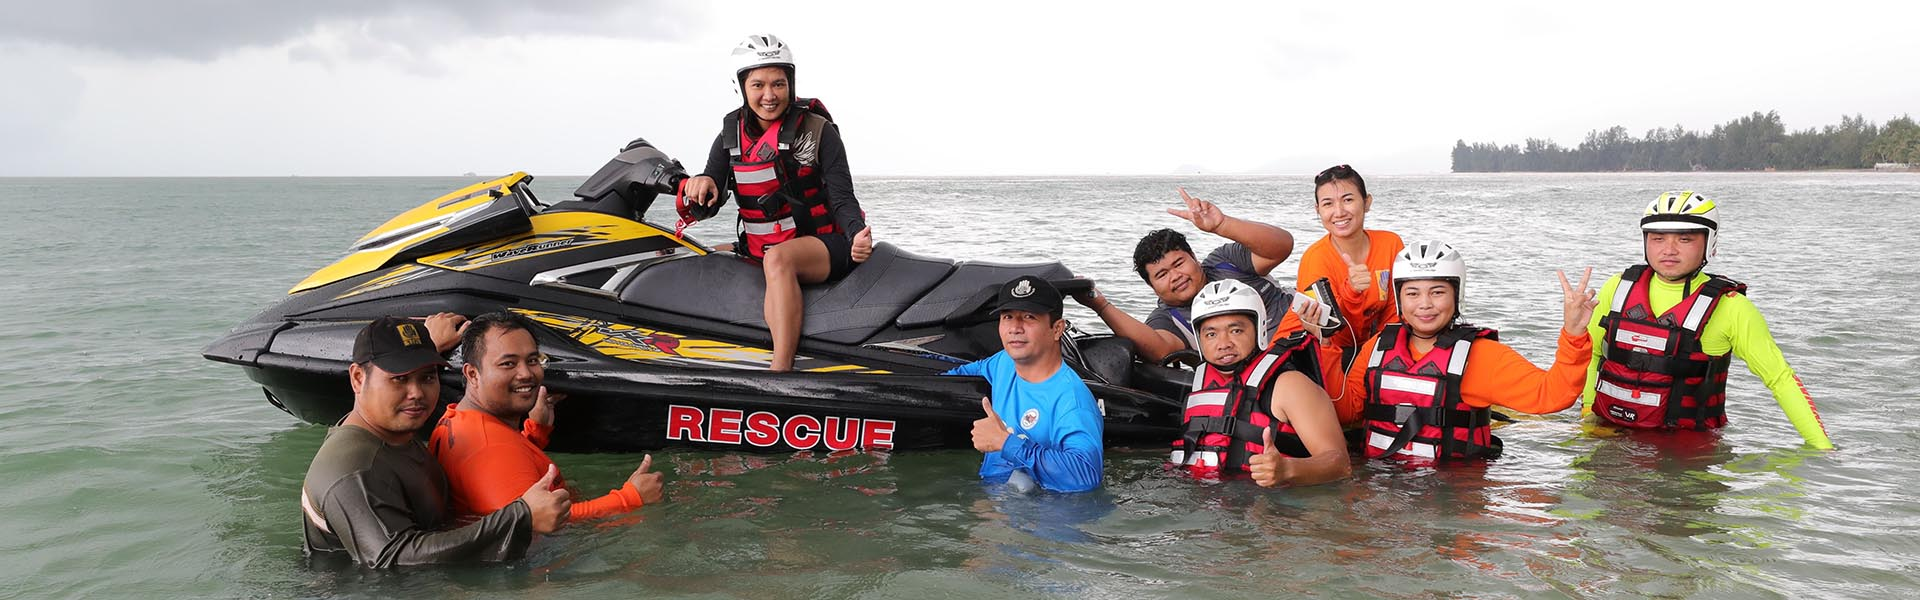 LifeSled Water Rescue Board Testimonials